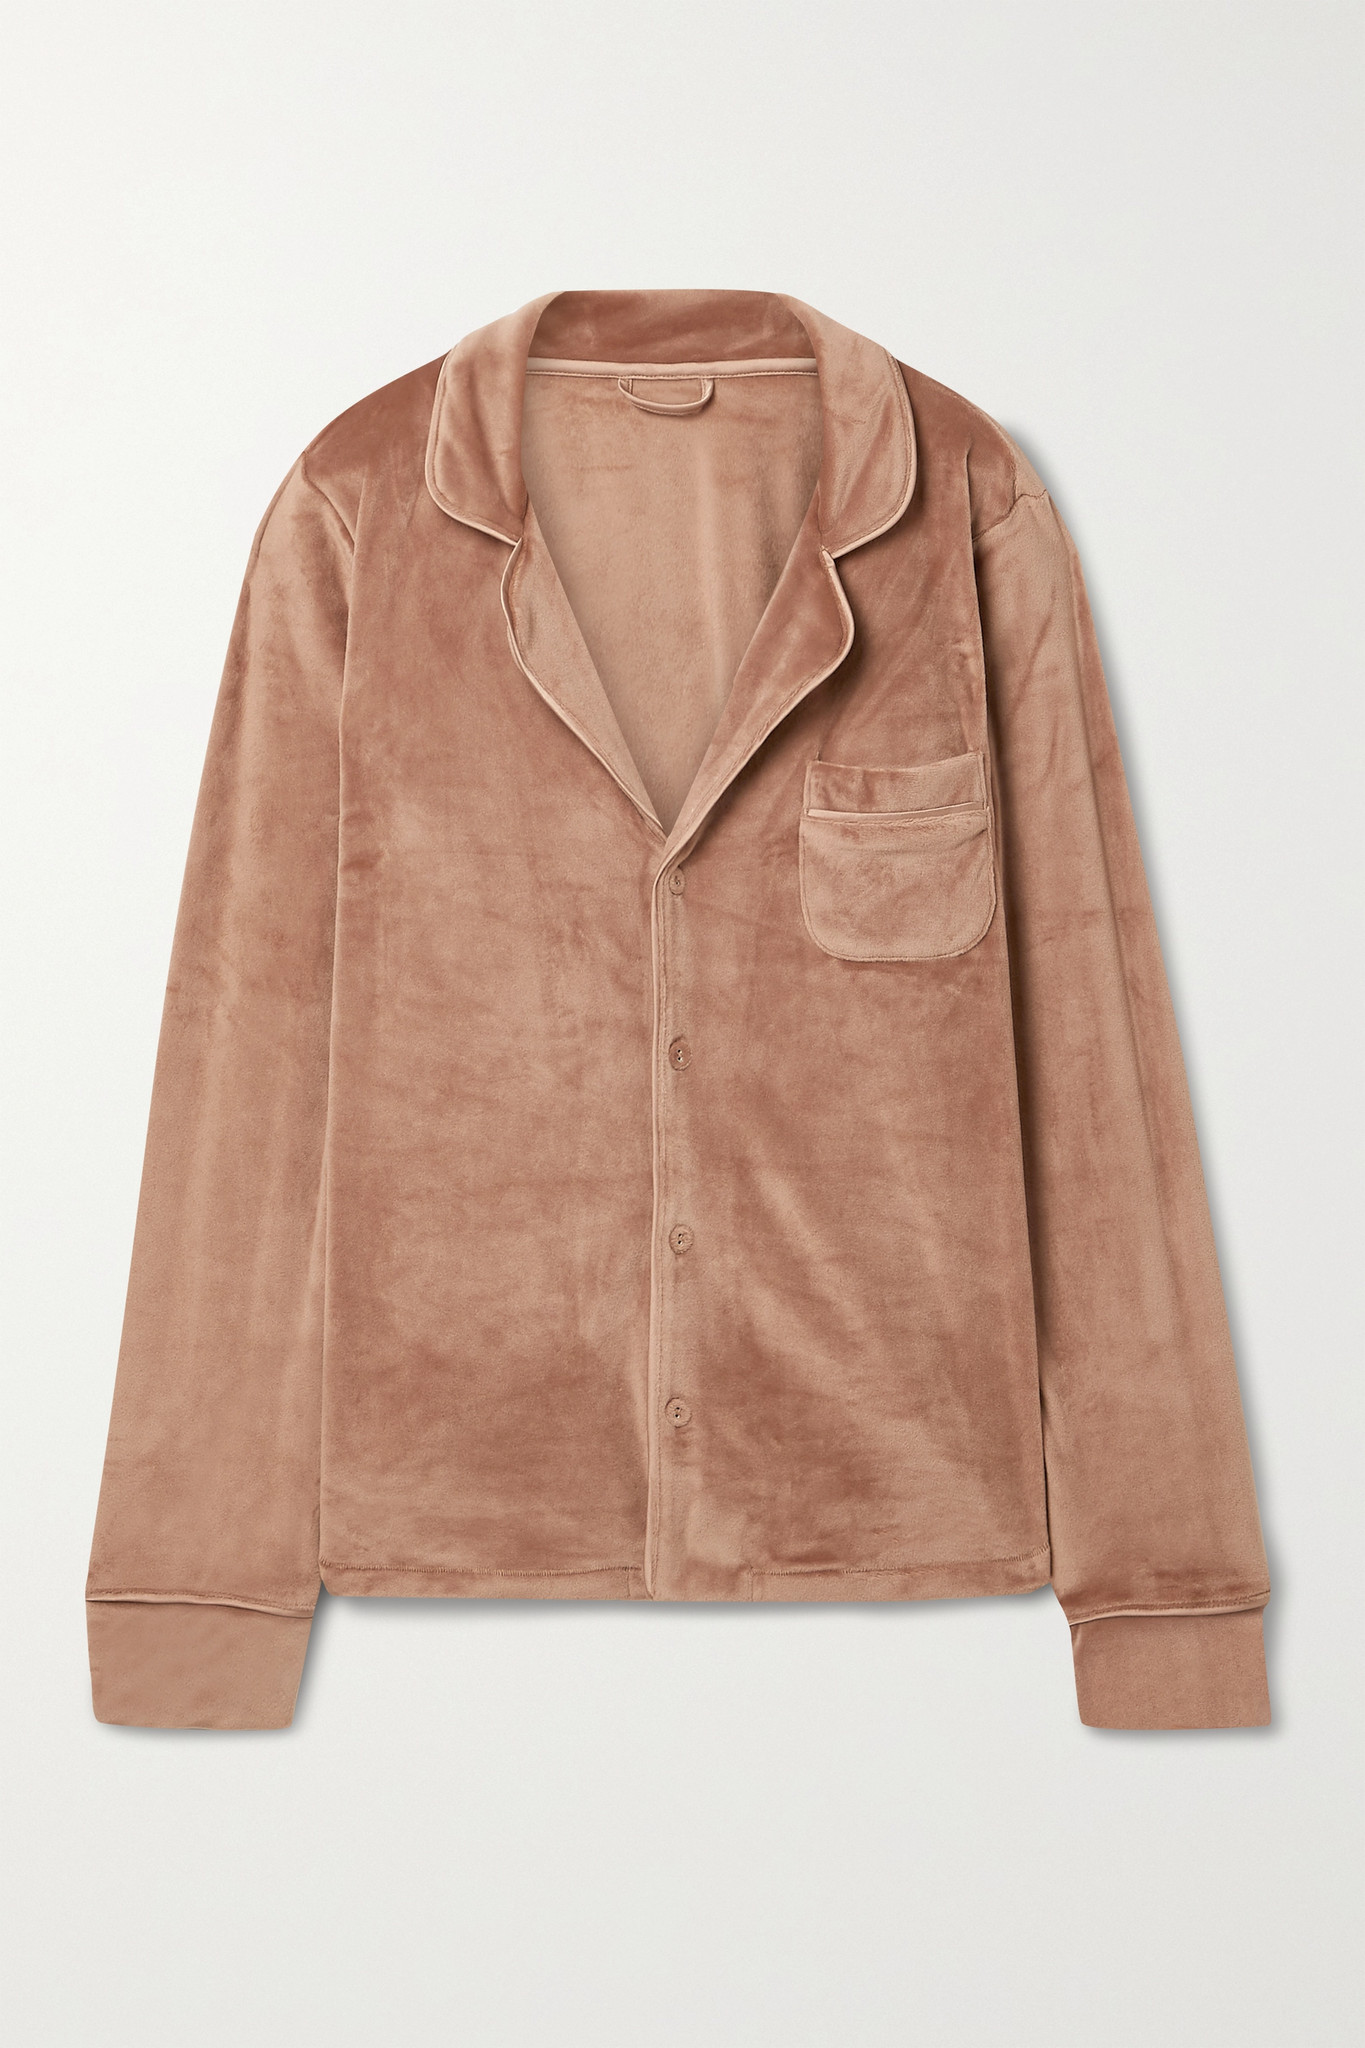 SKIMS - Velour Sleep Shirt - Sienna - Brown - L